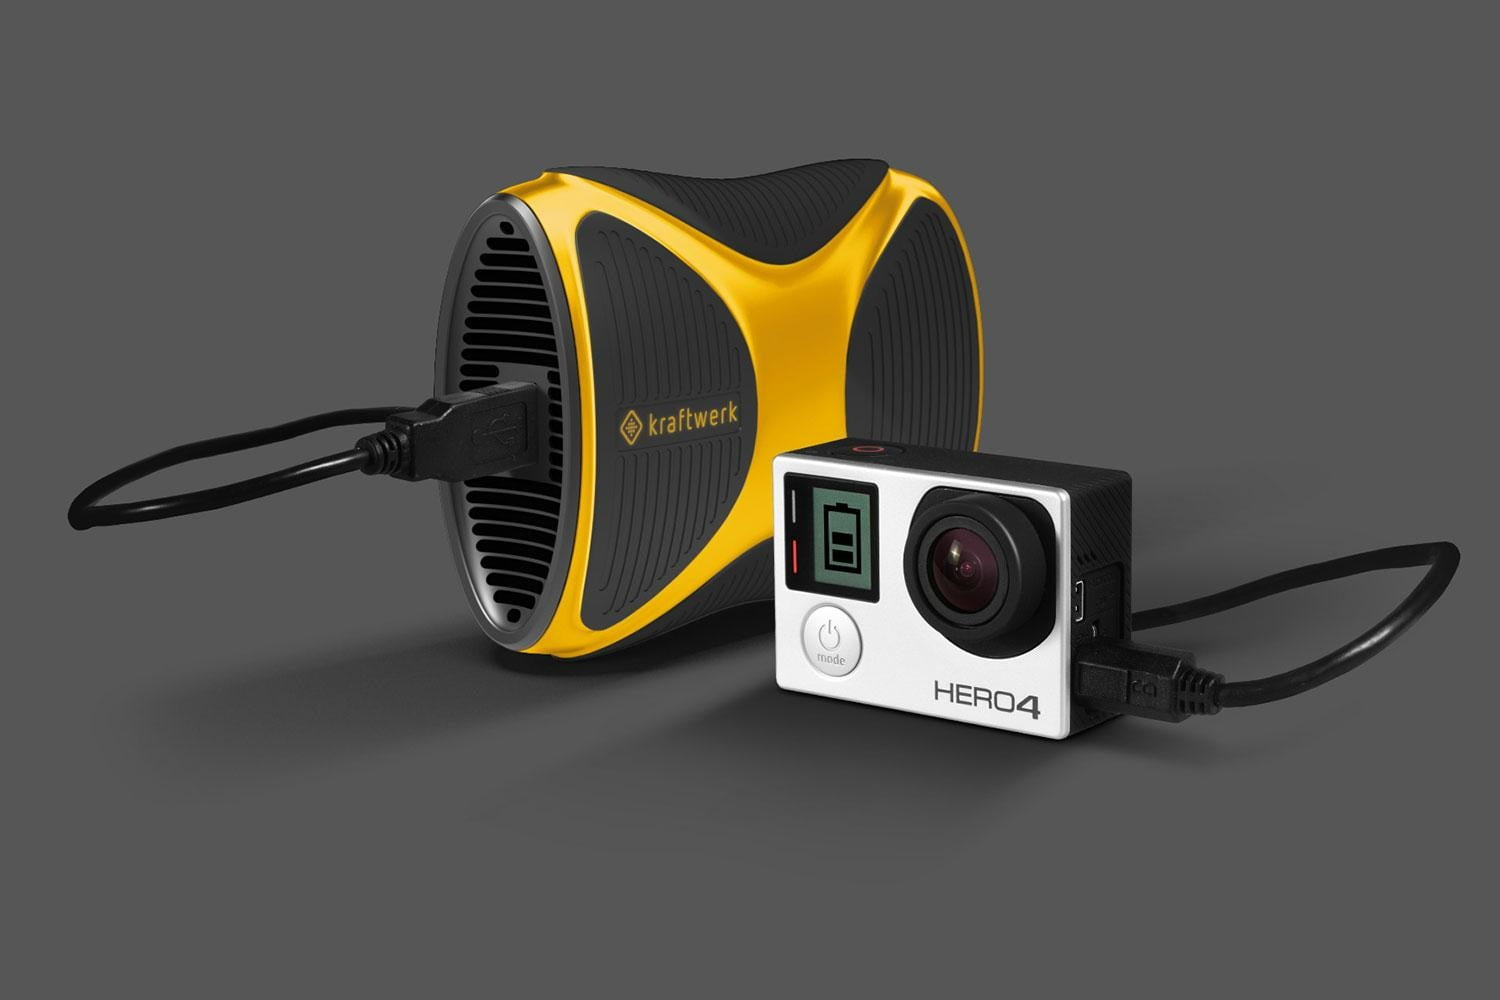 kraftwerk gas charge your devices yellow gopro charging